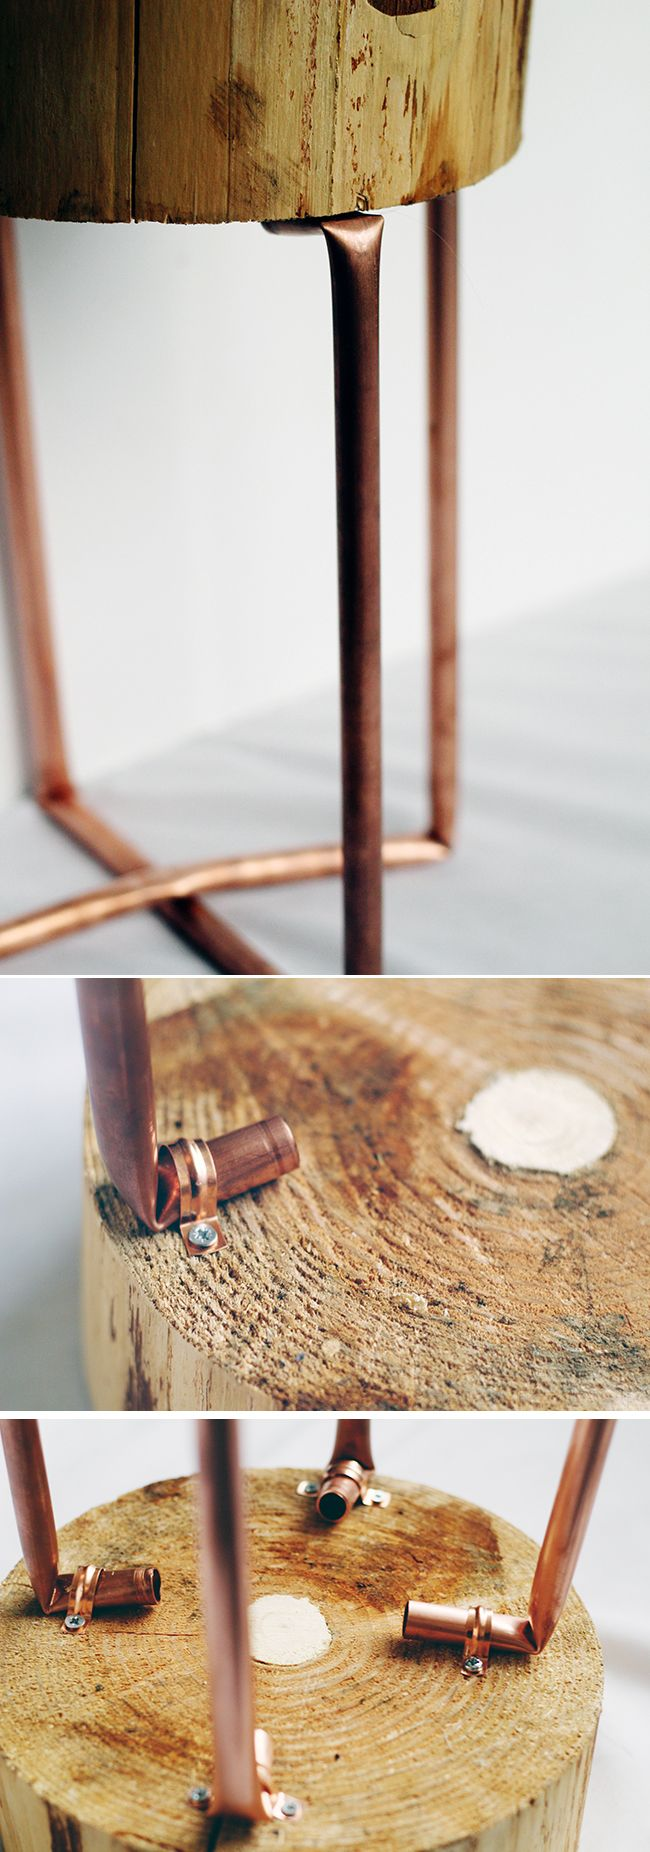 Fall For DIY Copper and Wood Slice Table tutorial Steps 10-11